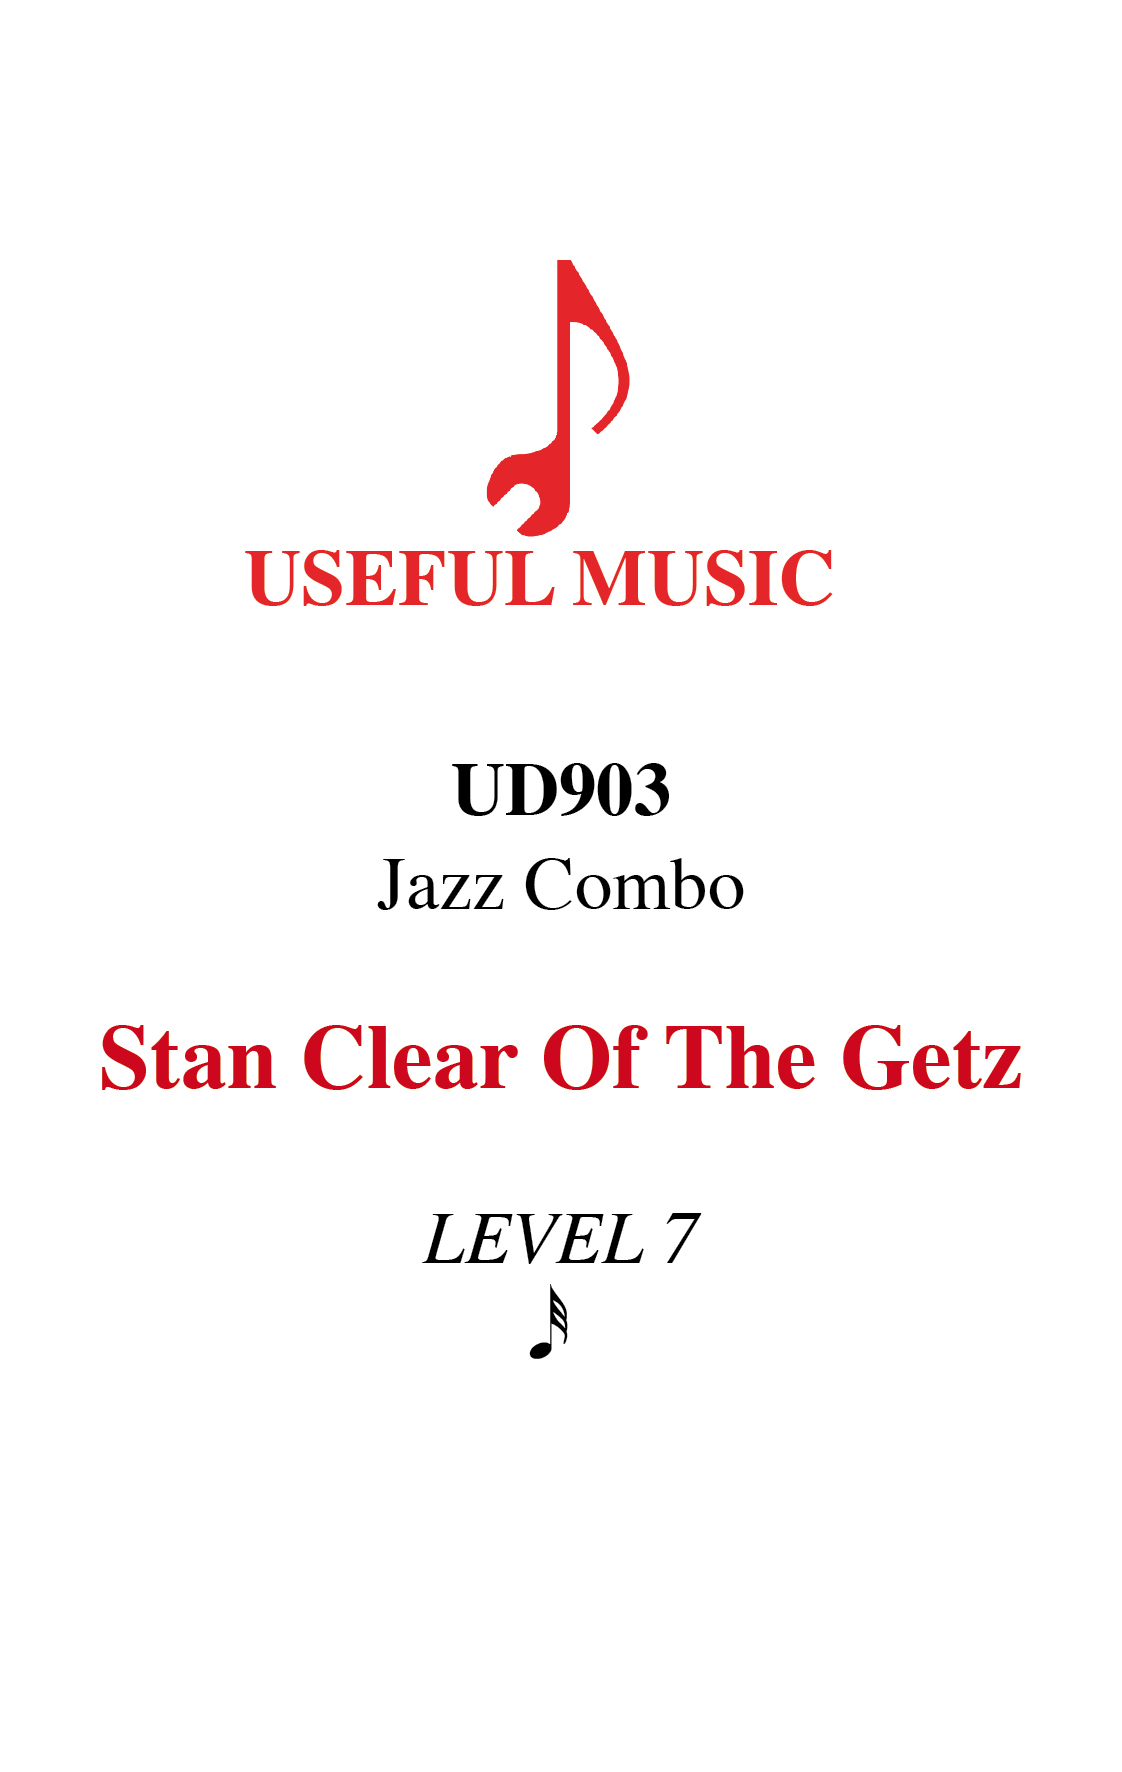 Stan Clear of the Getz - Jazz Combo